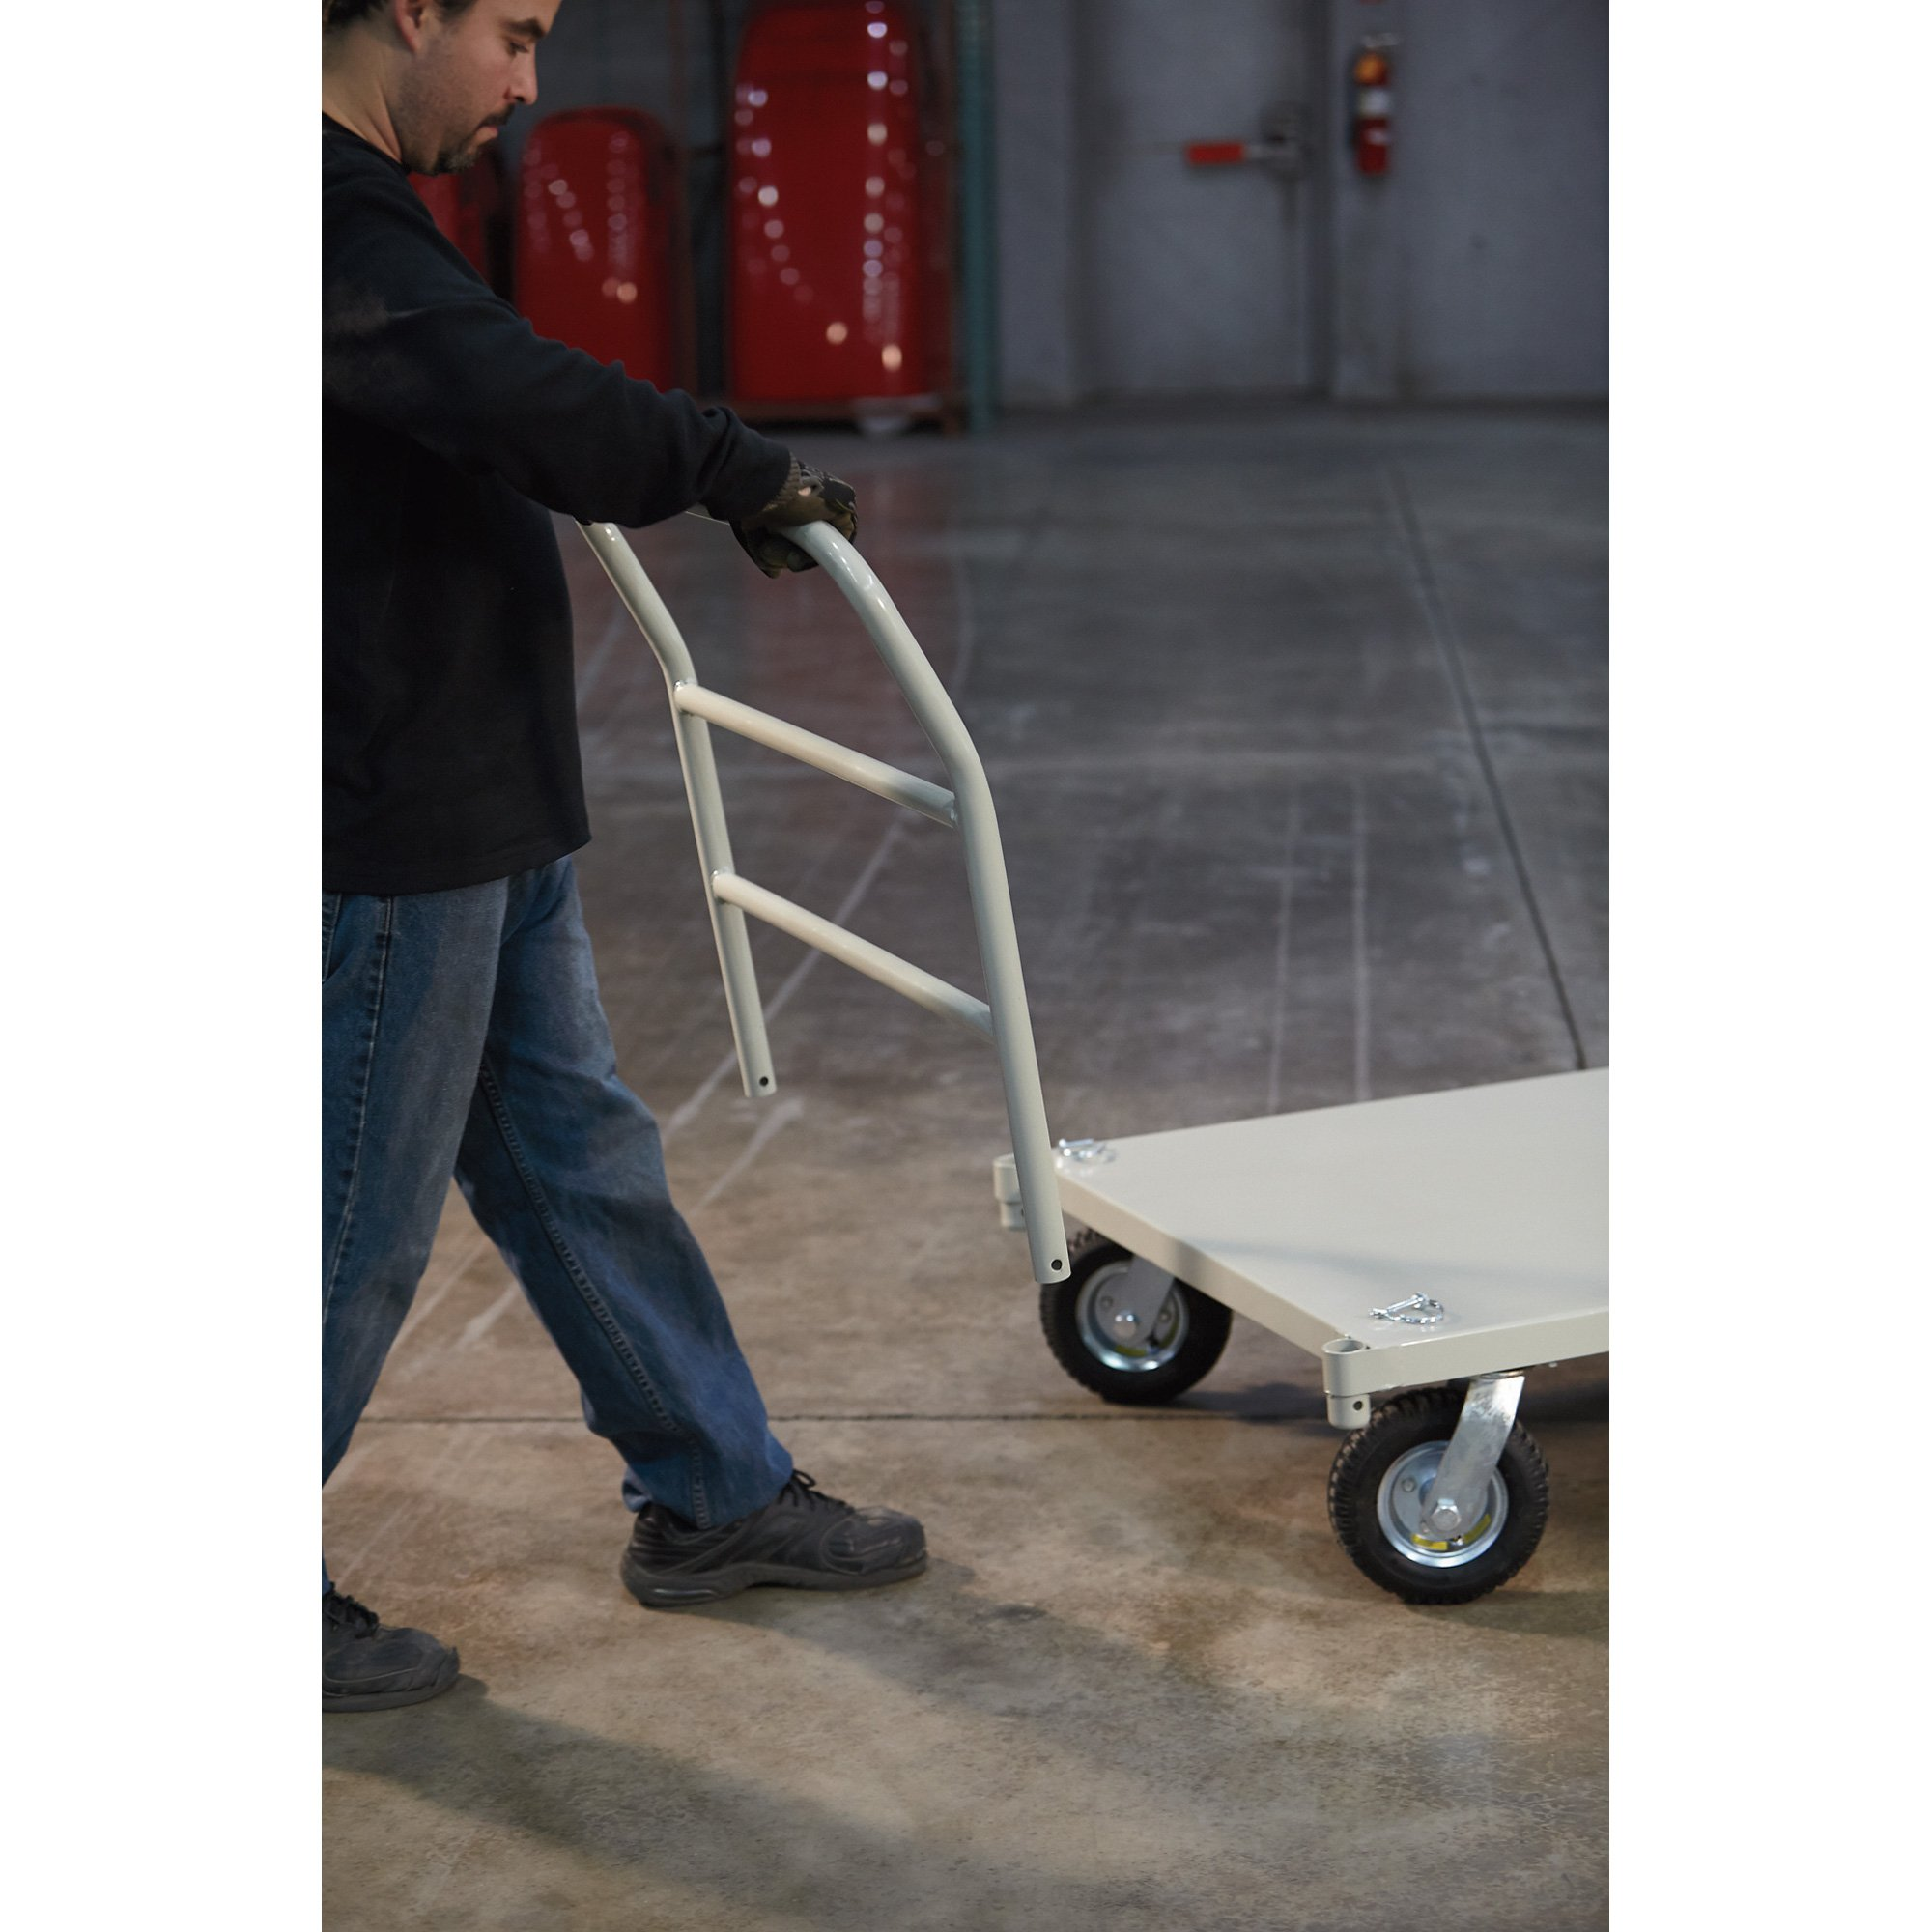 Roughneck Platform Truck - 1,000lb. Capacity, 30in. x 50in. by Roughneck